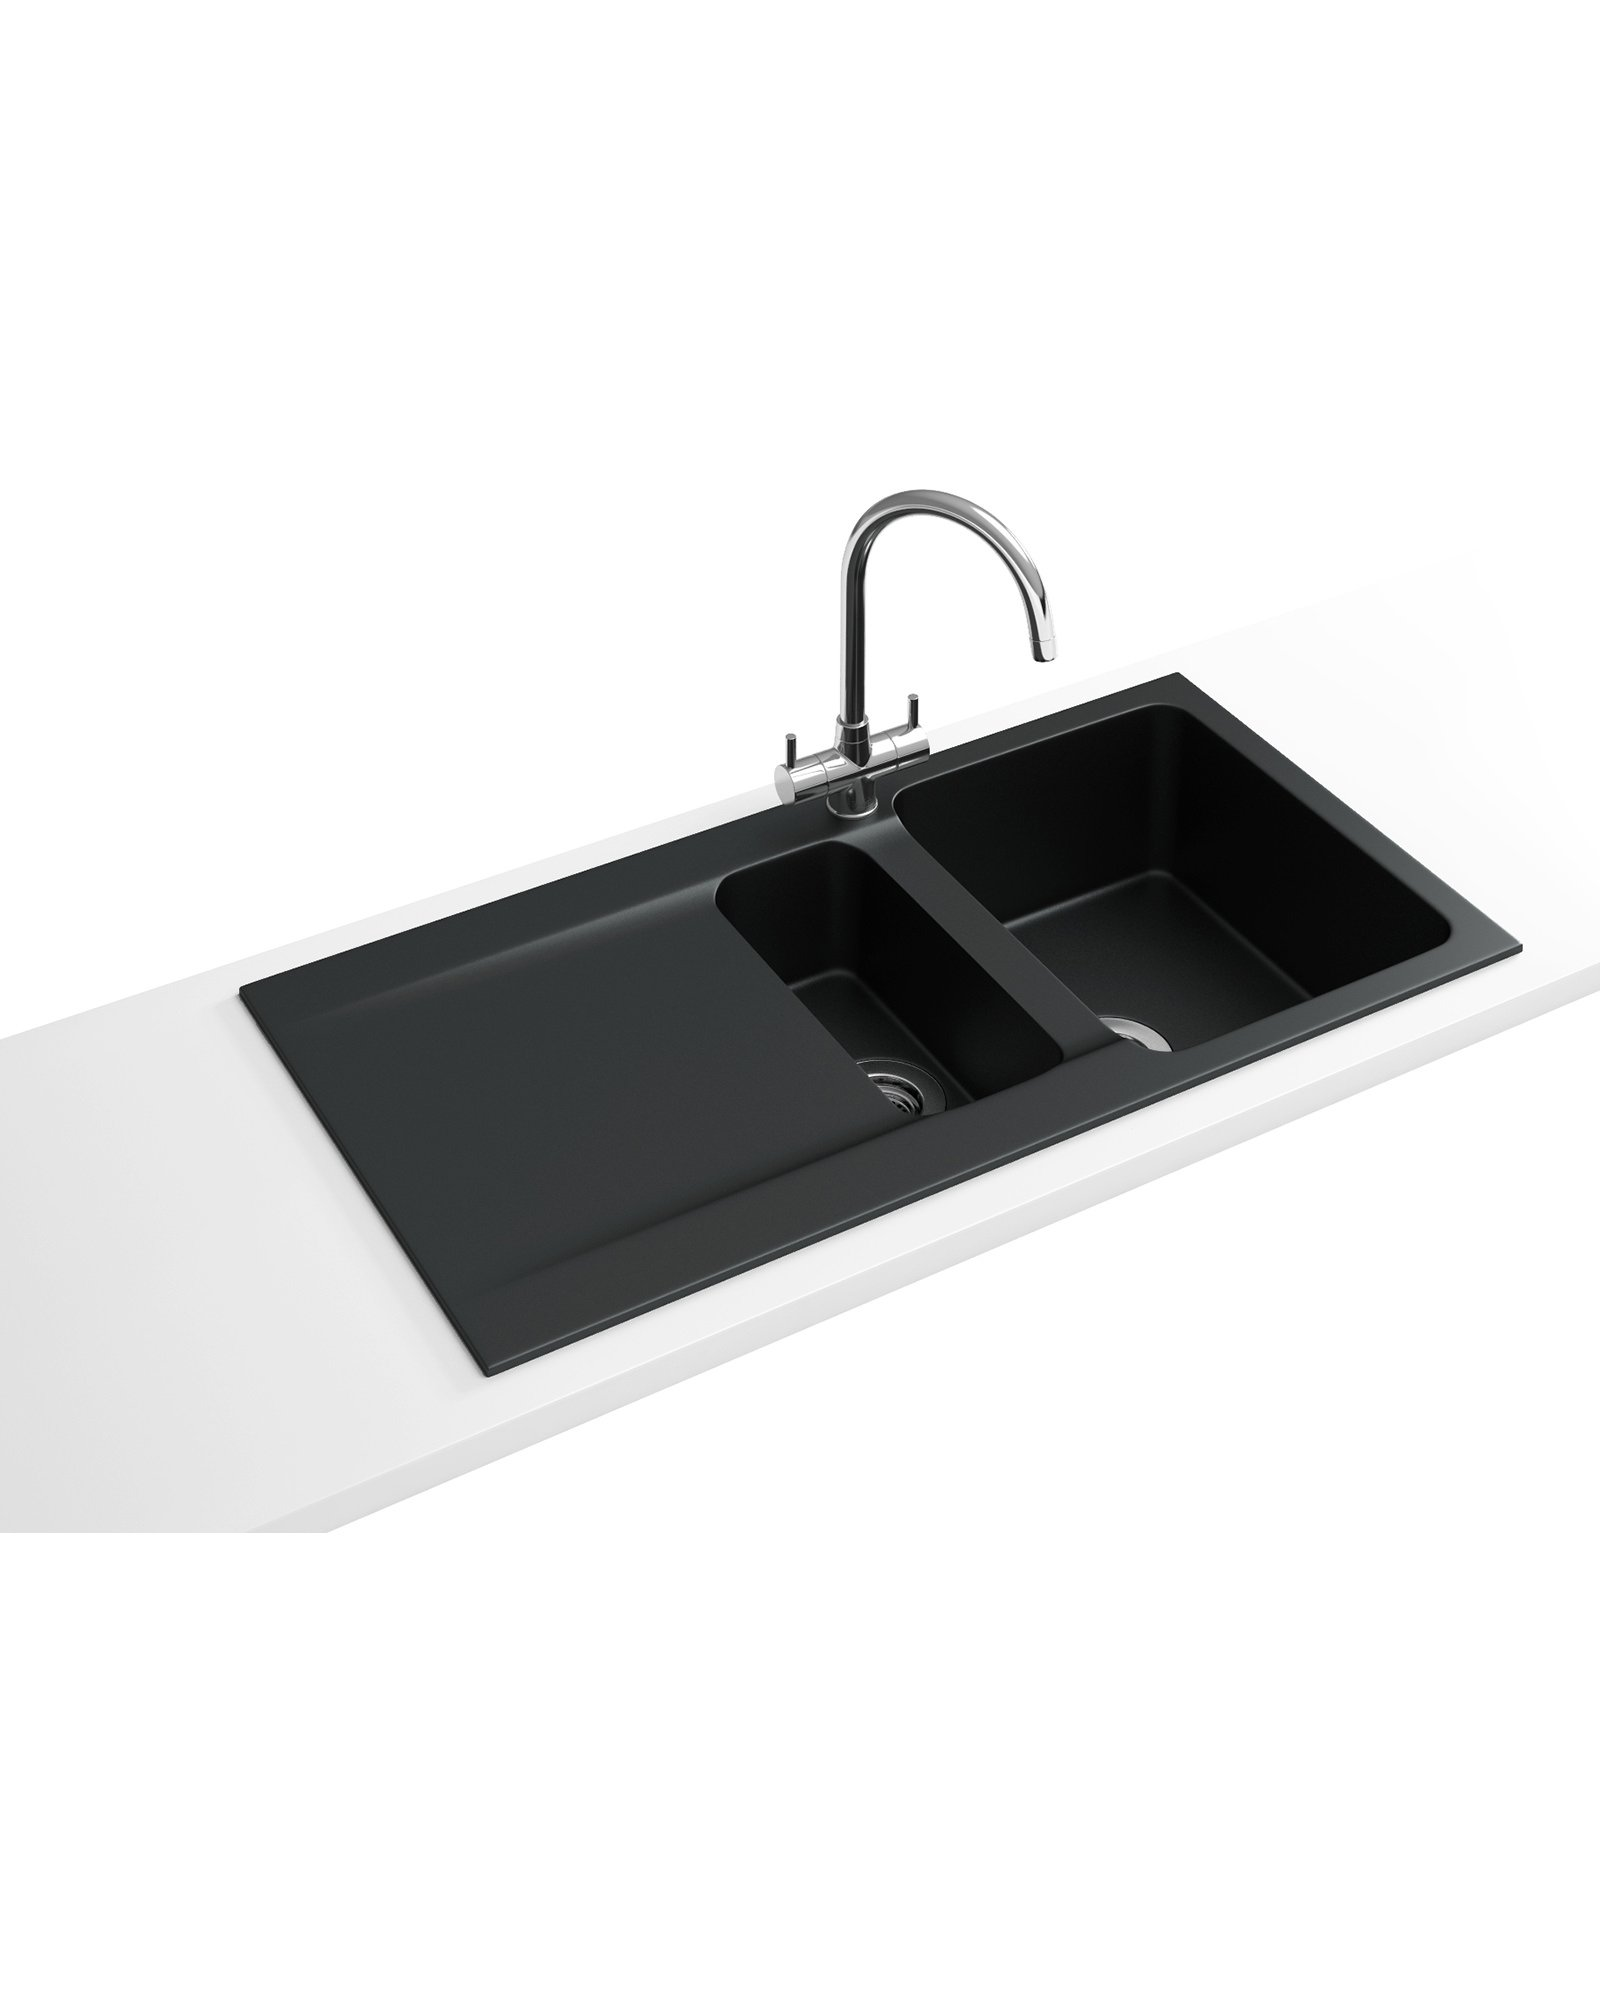 Orion OID 651 Propack - Tectonite Carbon Black Sink And Tap